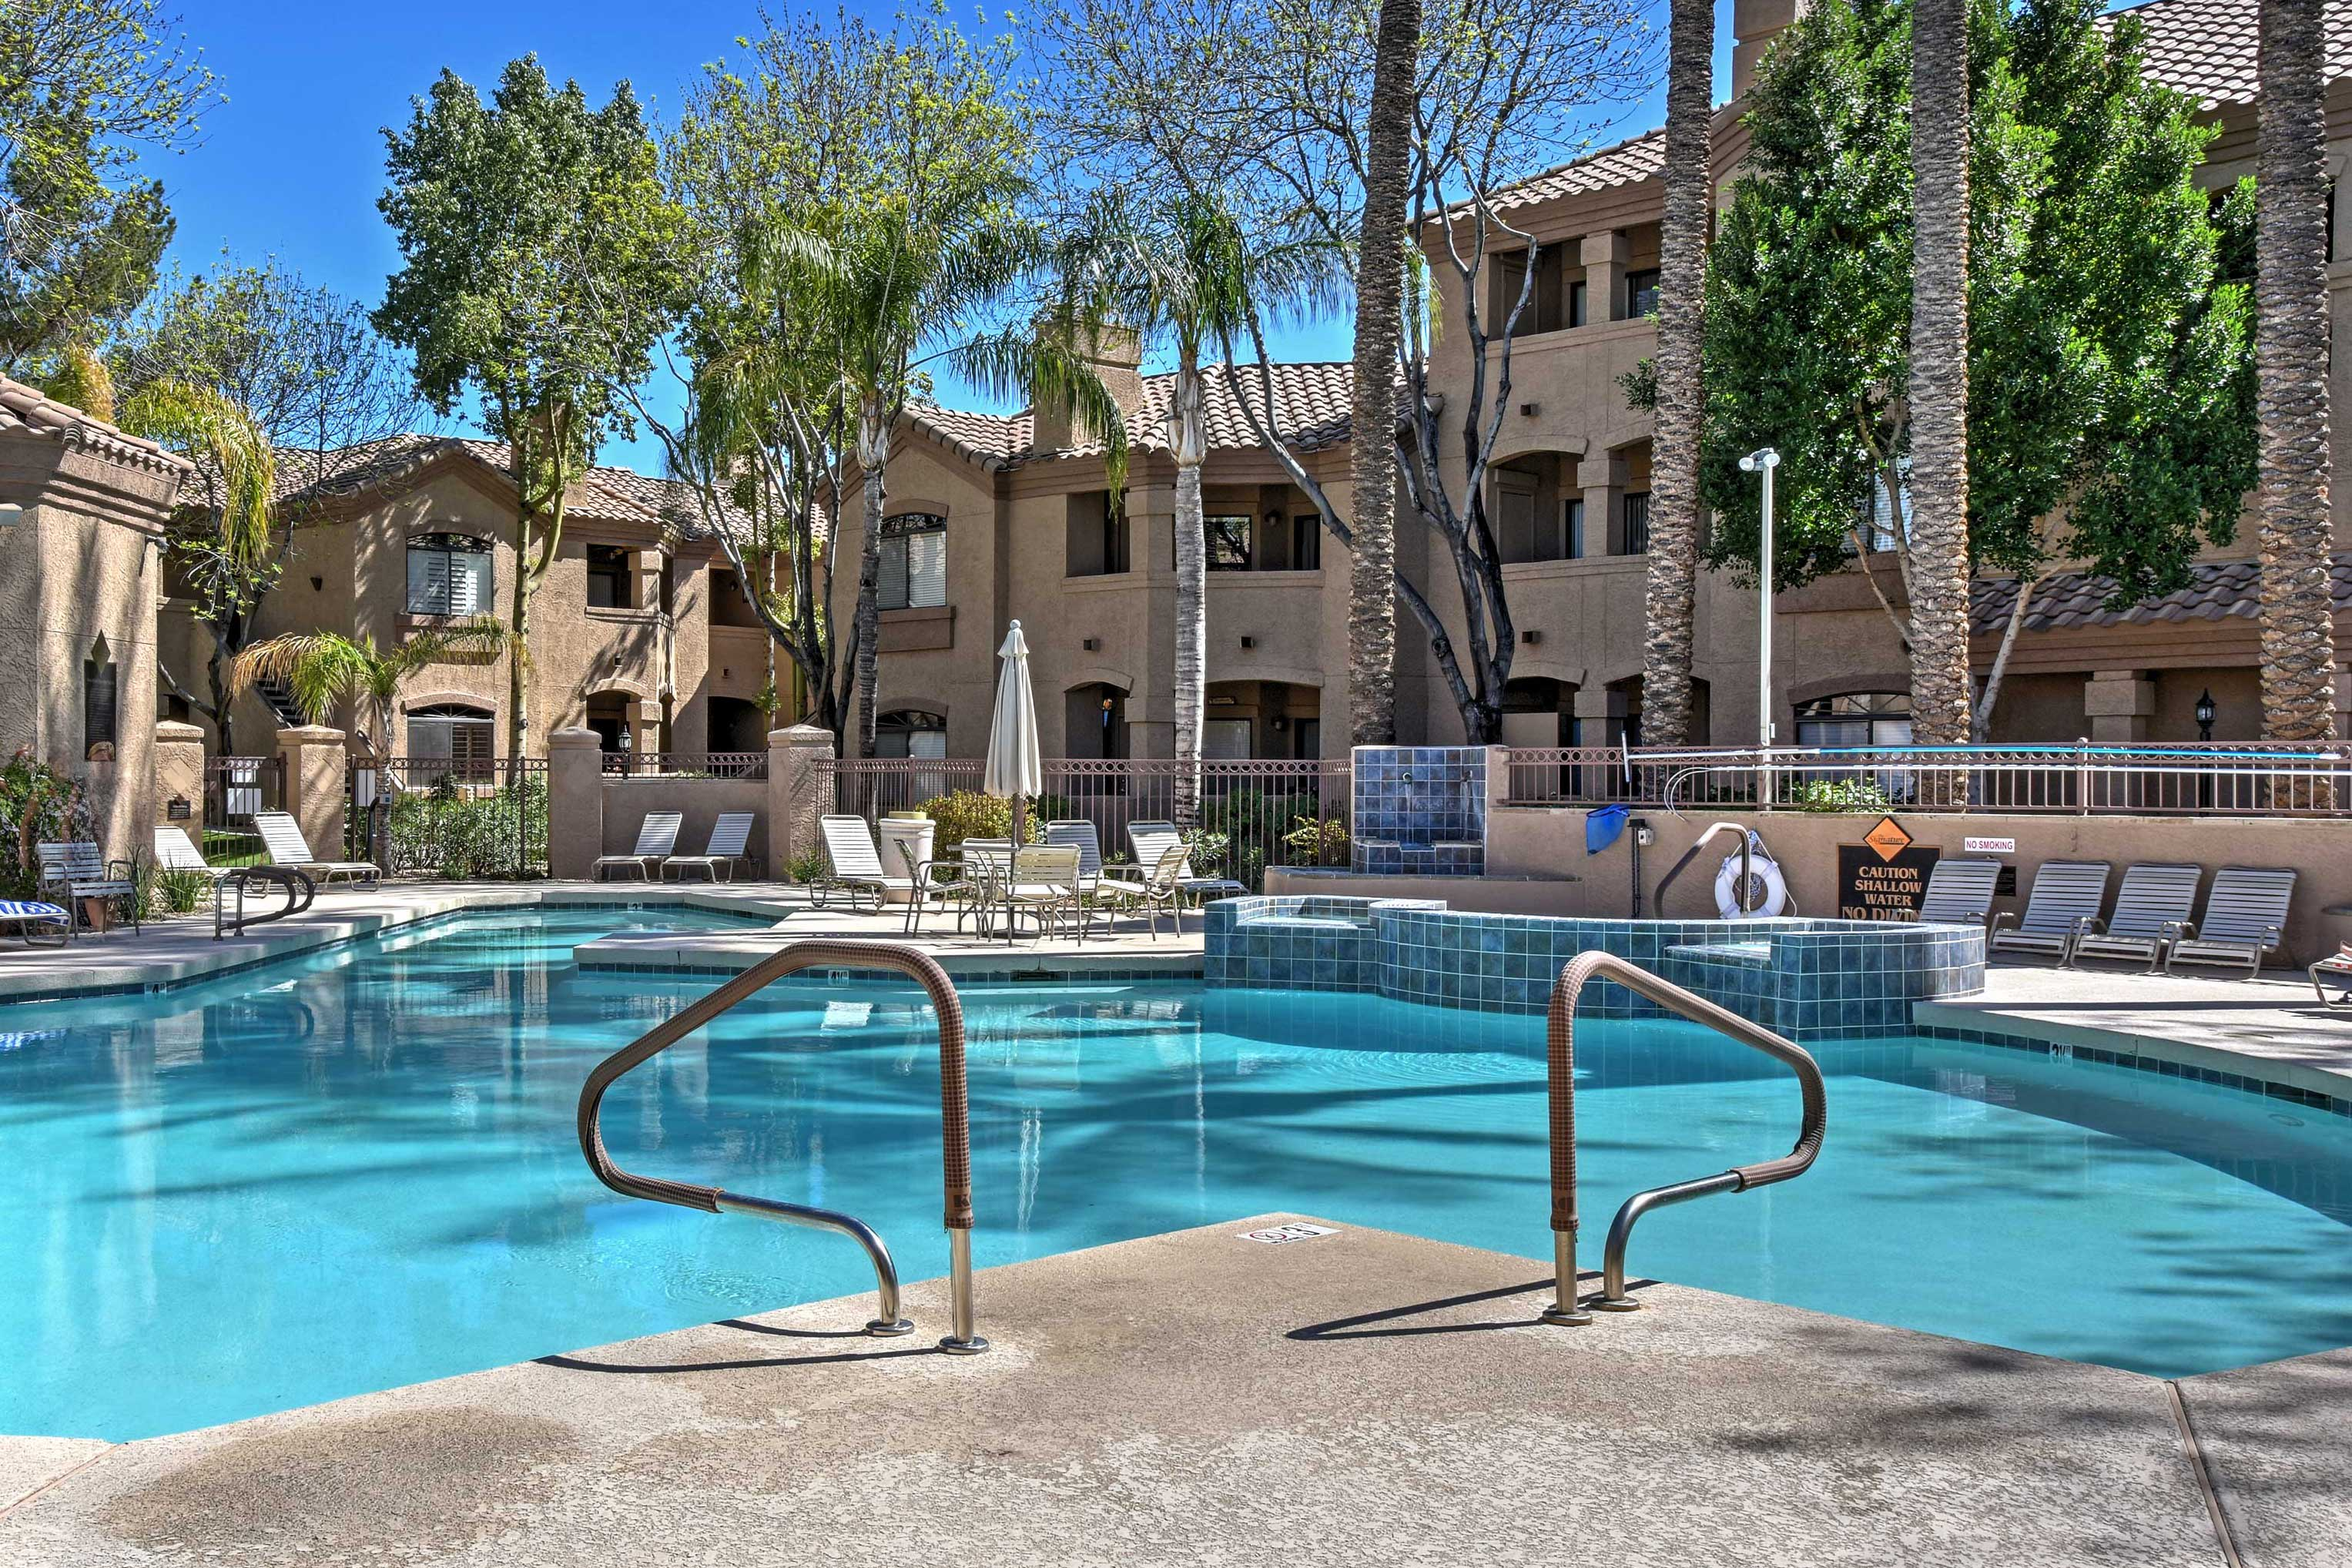 Discover Scottsdale living at this 2-bed, 1-bath vacation rental condo.